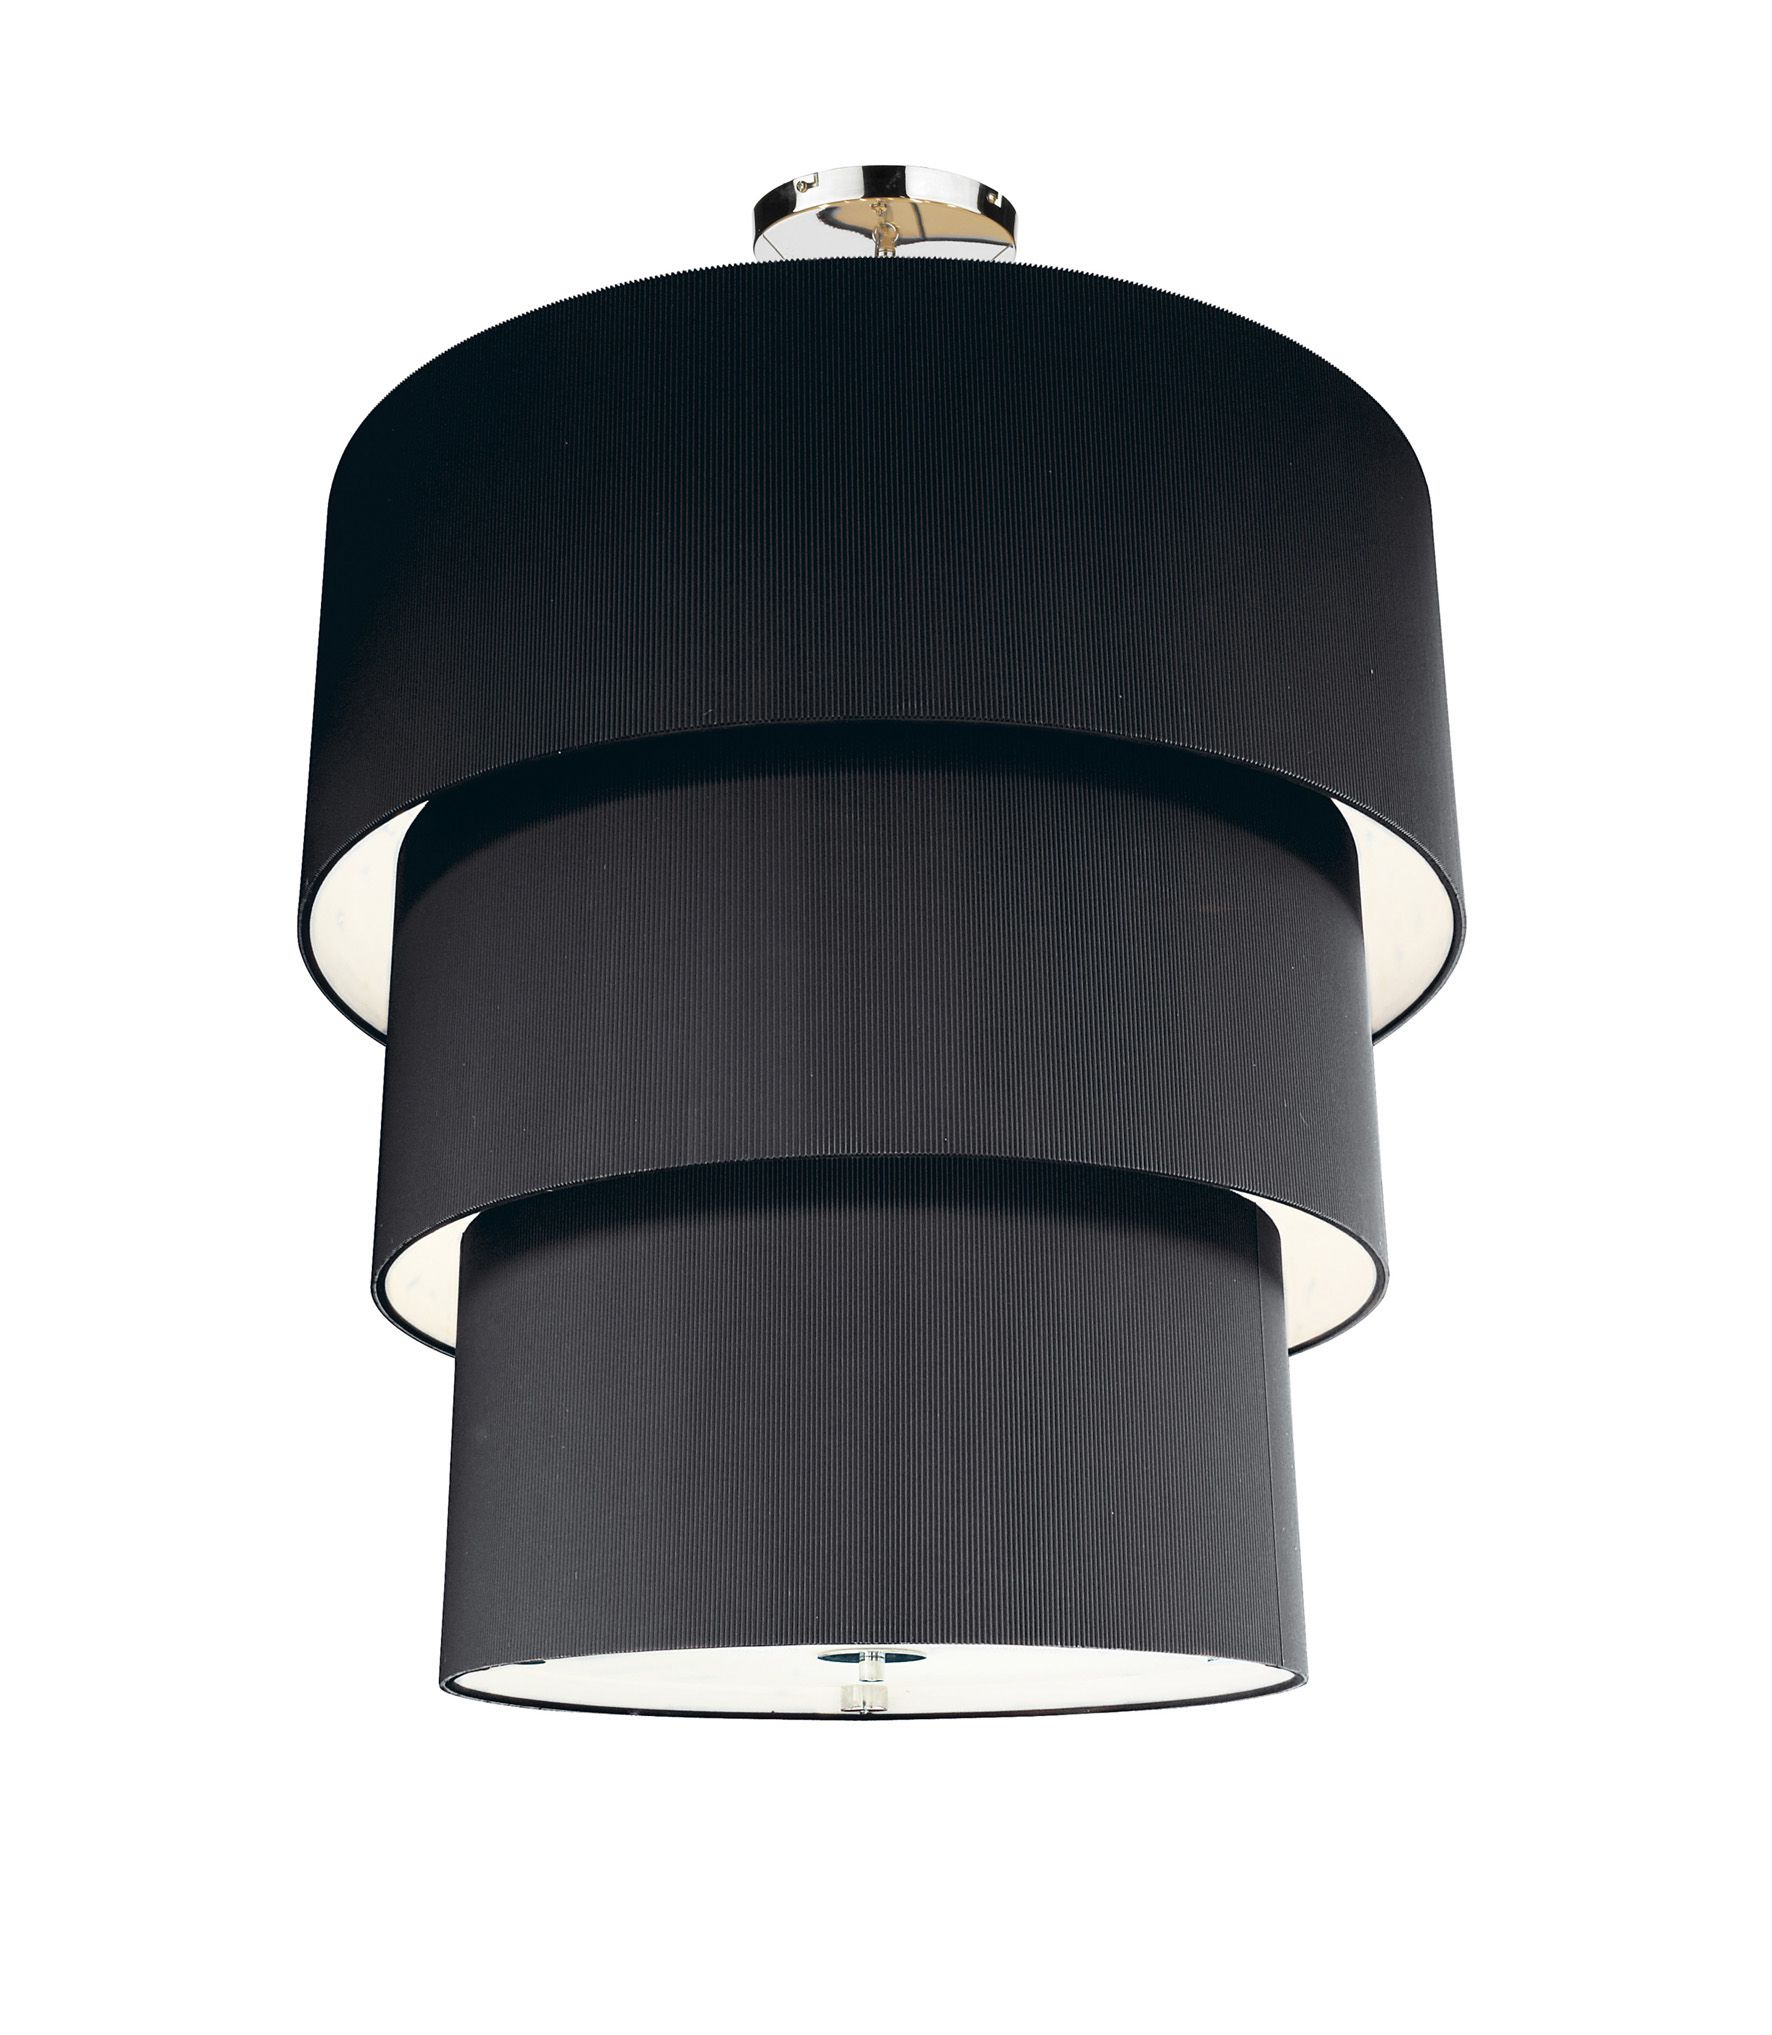 The Wide Ranges Of Options Stylish Black Lamp